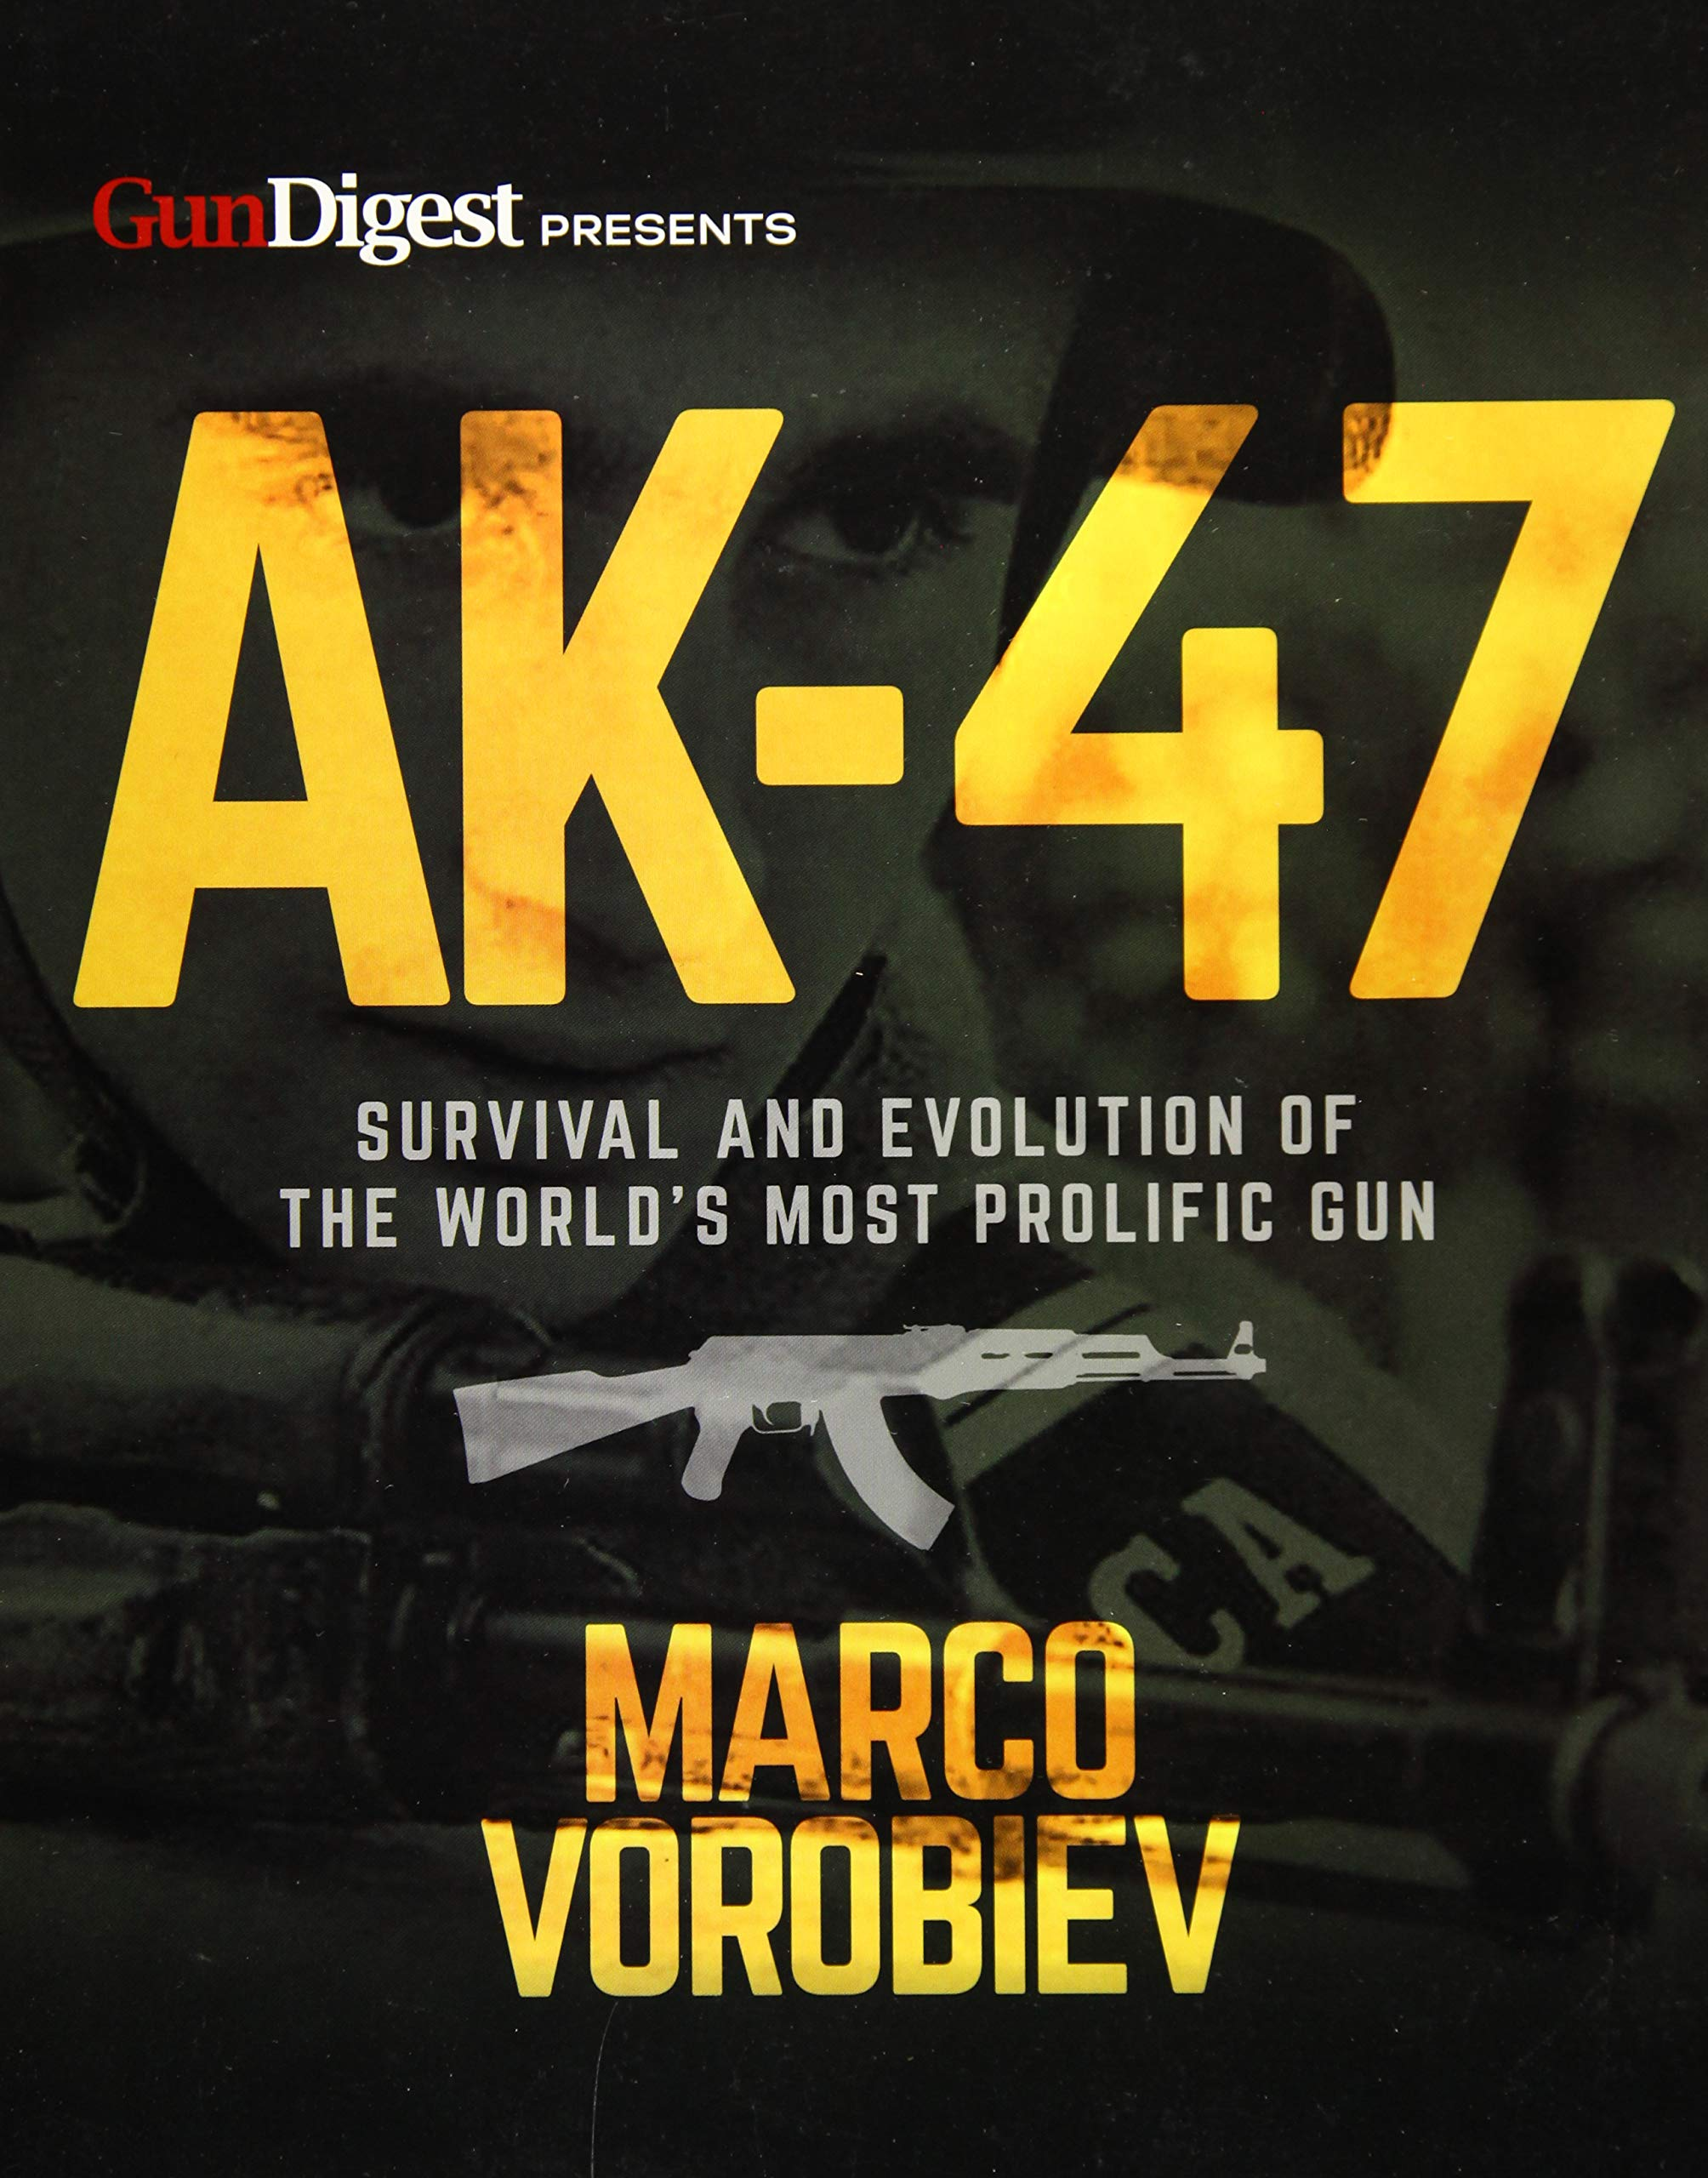 Image OfAK-47 - Survival And Evolution Of The World's Most Prolific Gun